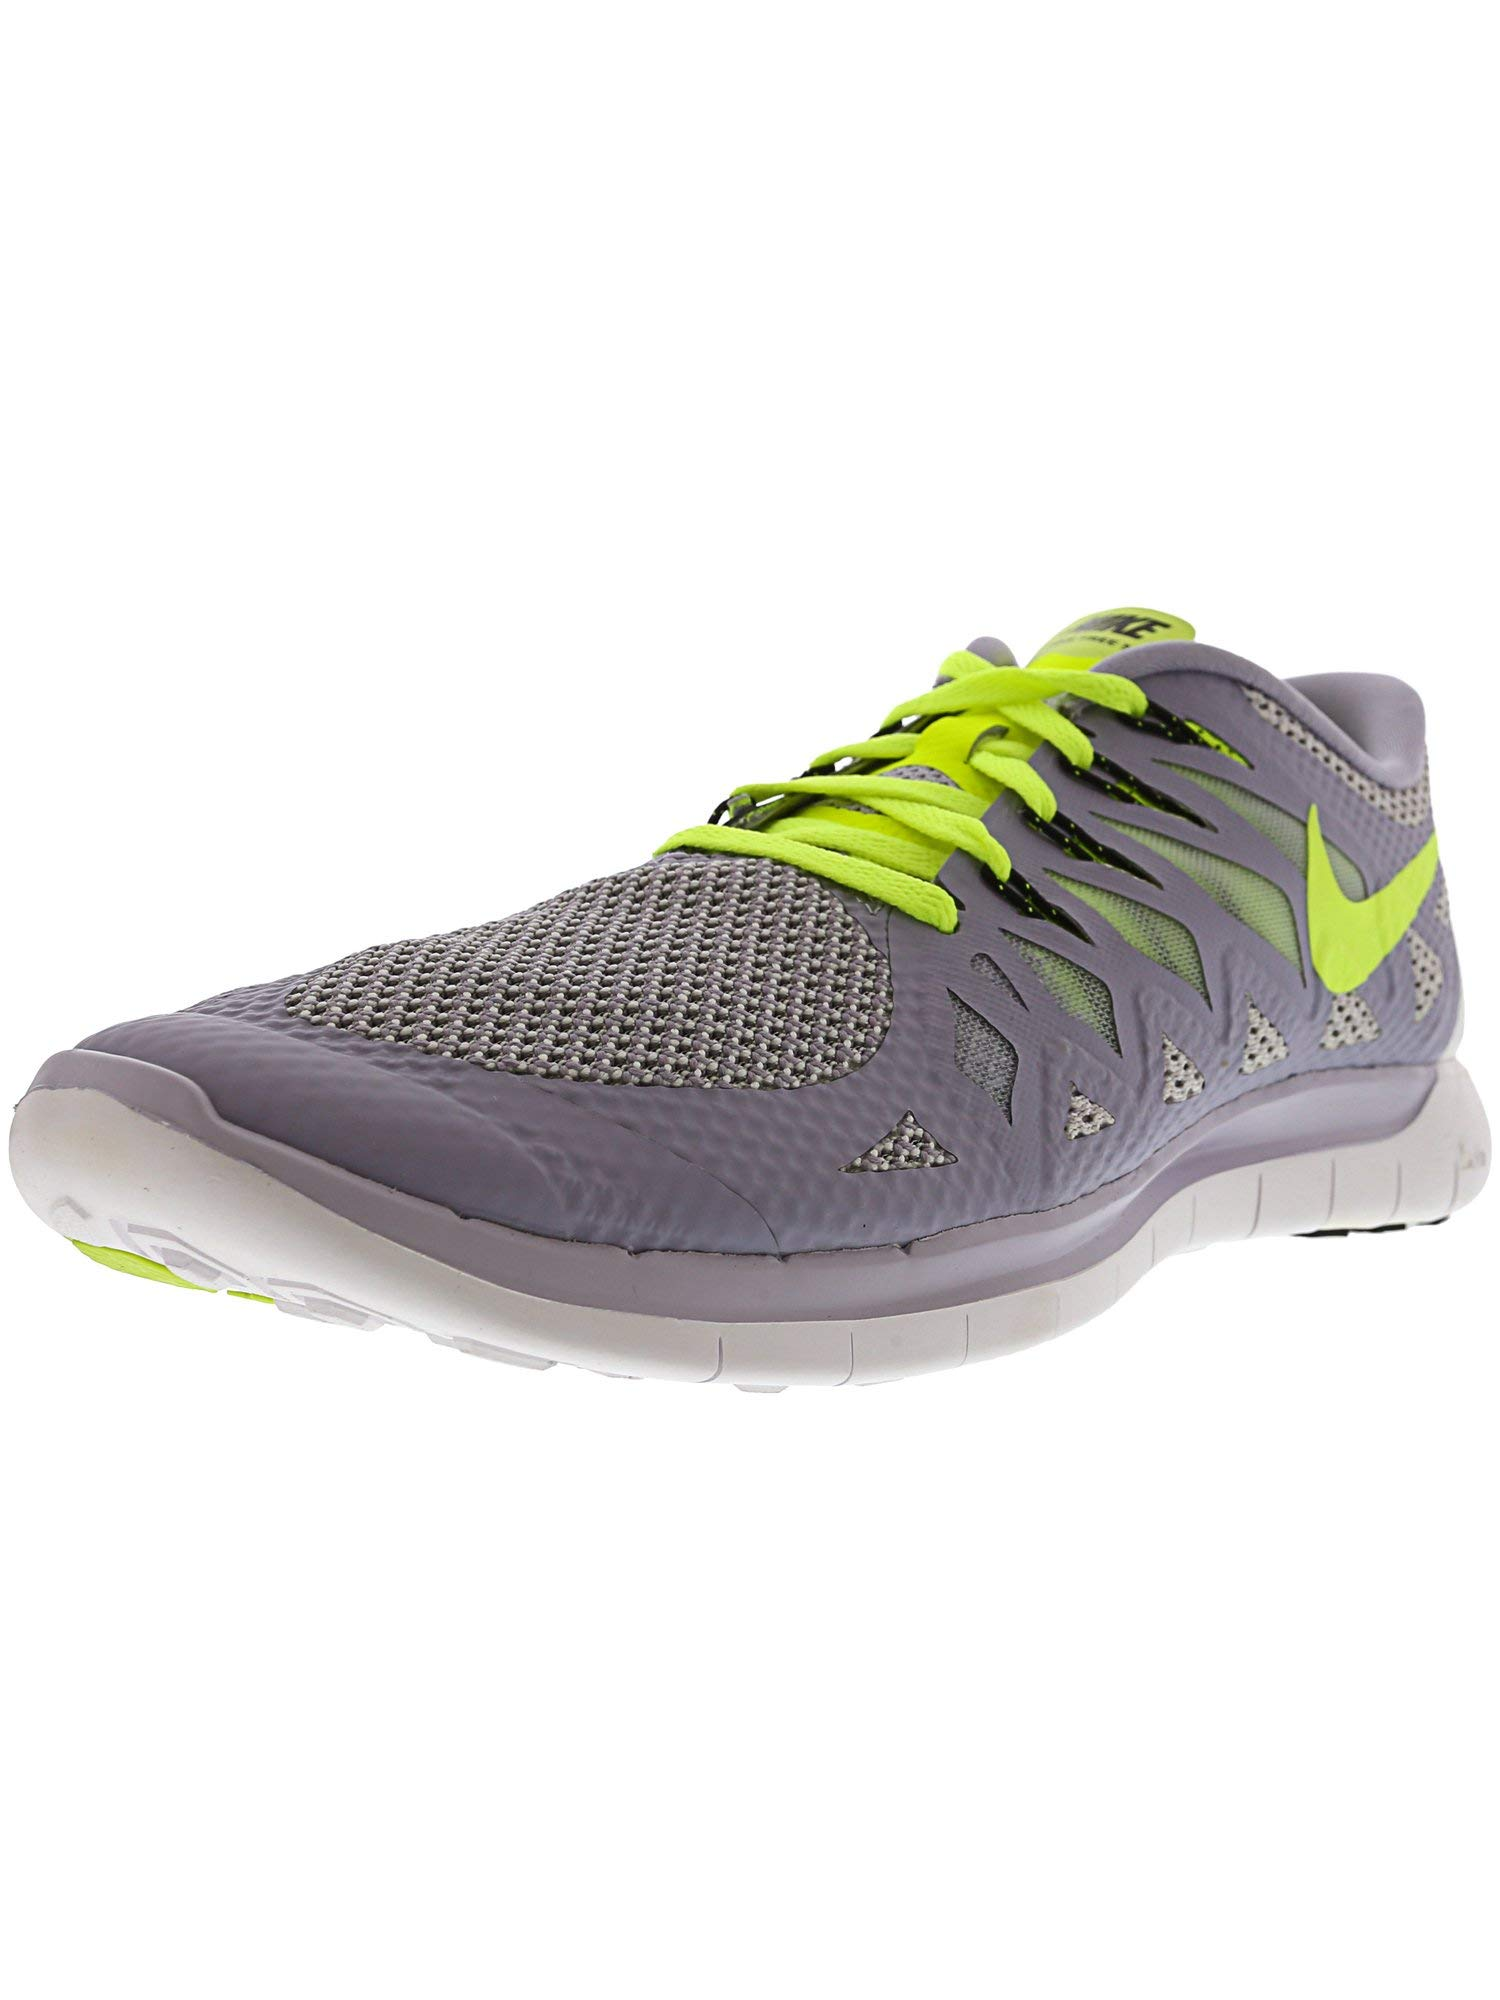 f0bae19bb15a8 Galleon - NIKE Women s Free 5.0 Titanium Volt - Pure Platinum Ankle-High Running  Shoe 10.5M